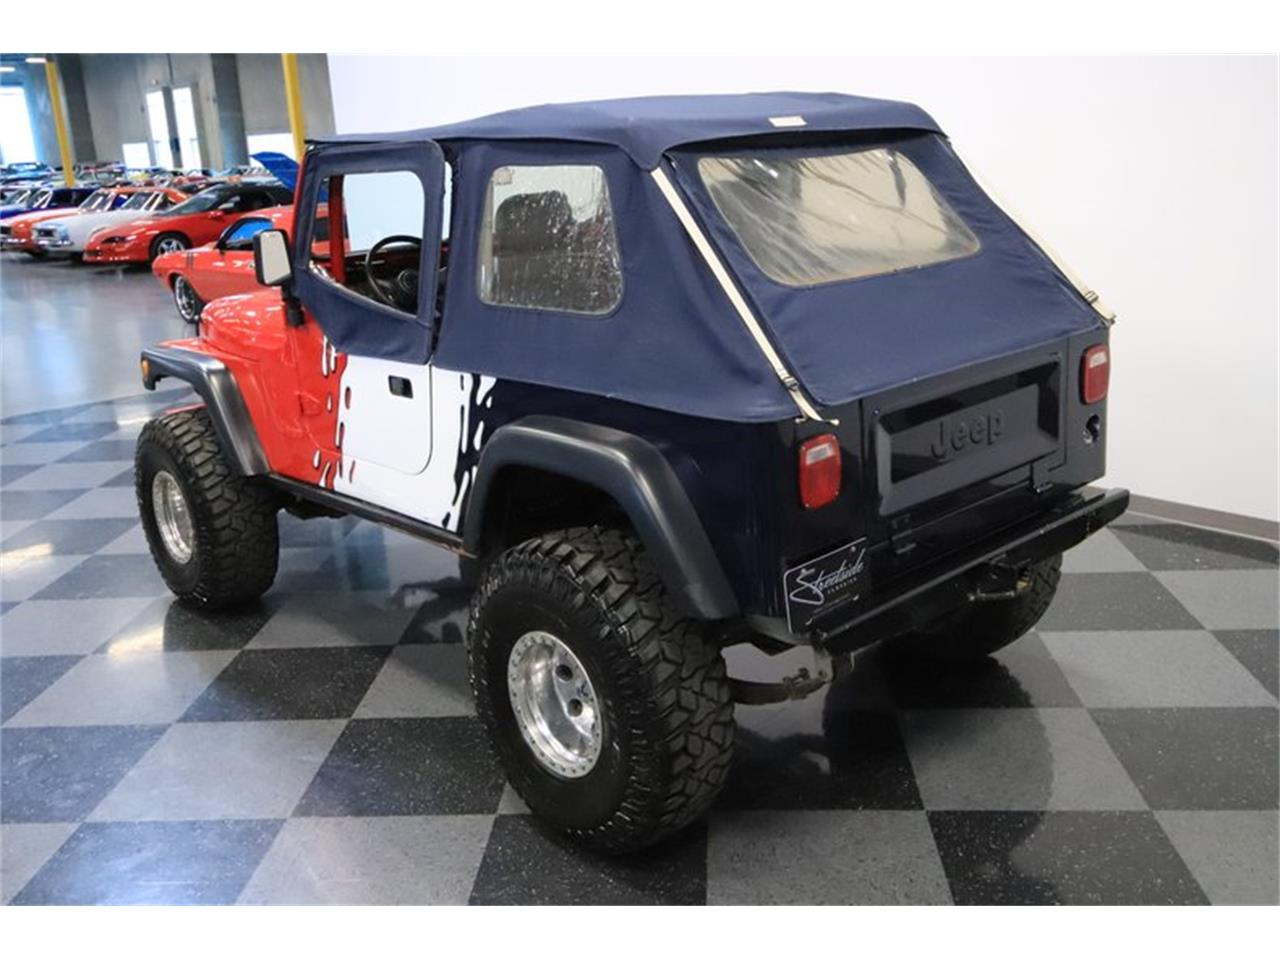 1983 Jeep CJ8 Scrambler for sale in Mesa, AZ – photo 23